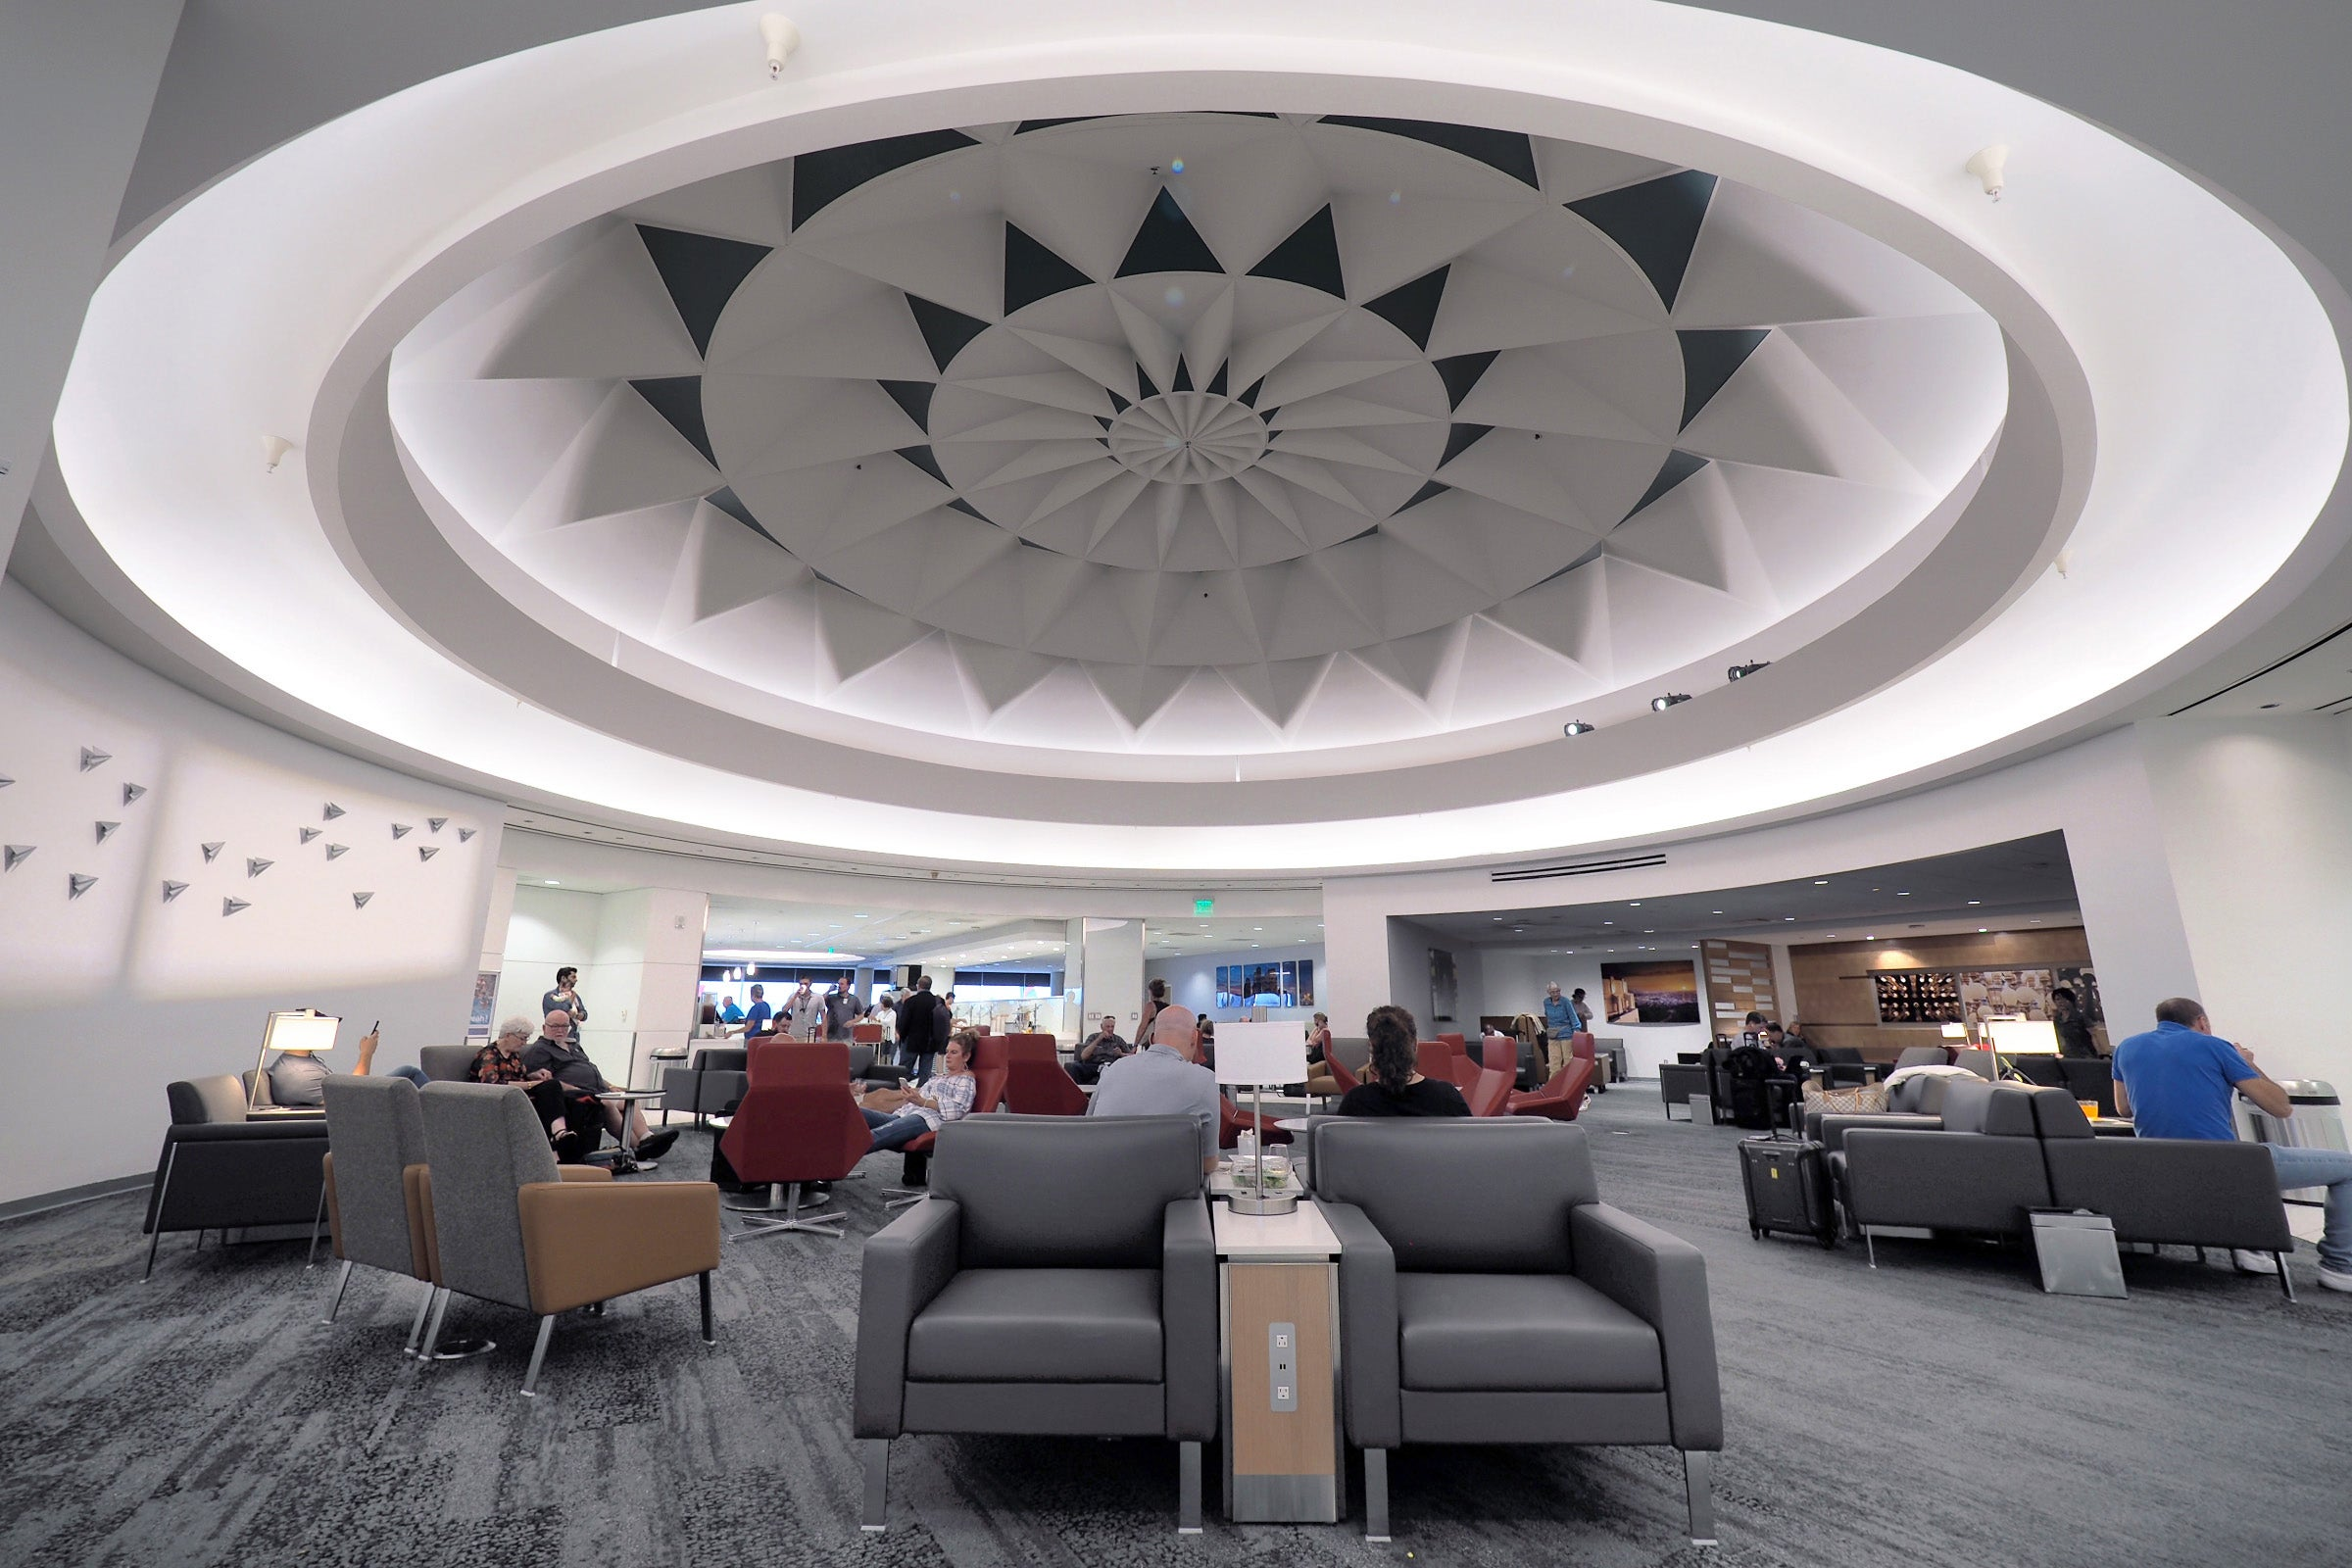 Cover Admirals Club Lounge Access And More With This Card